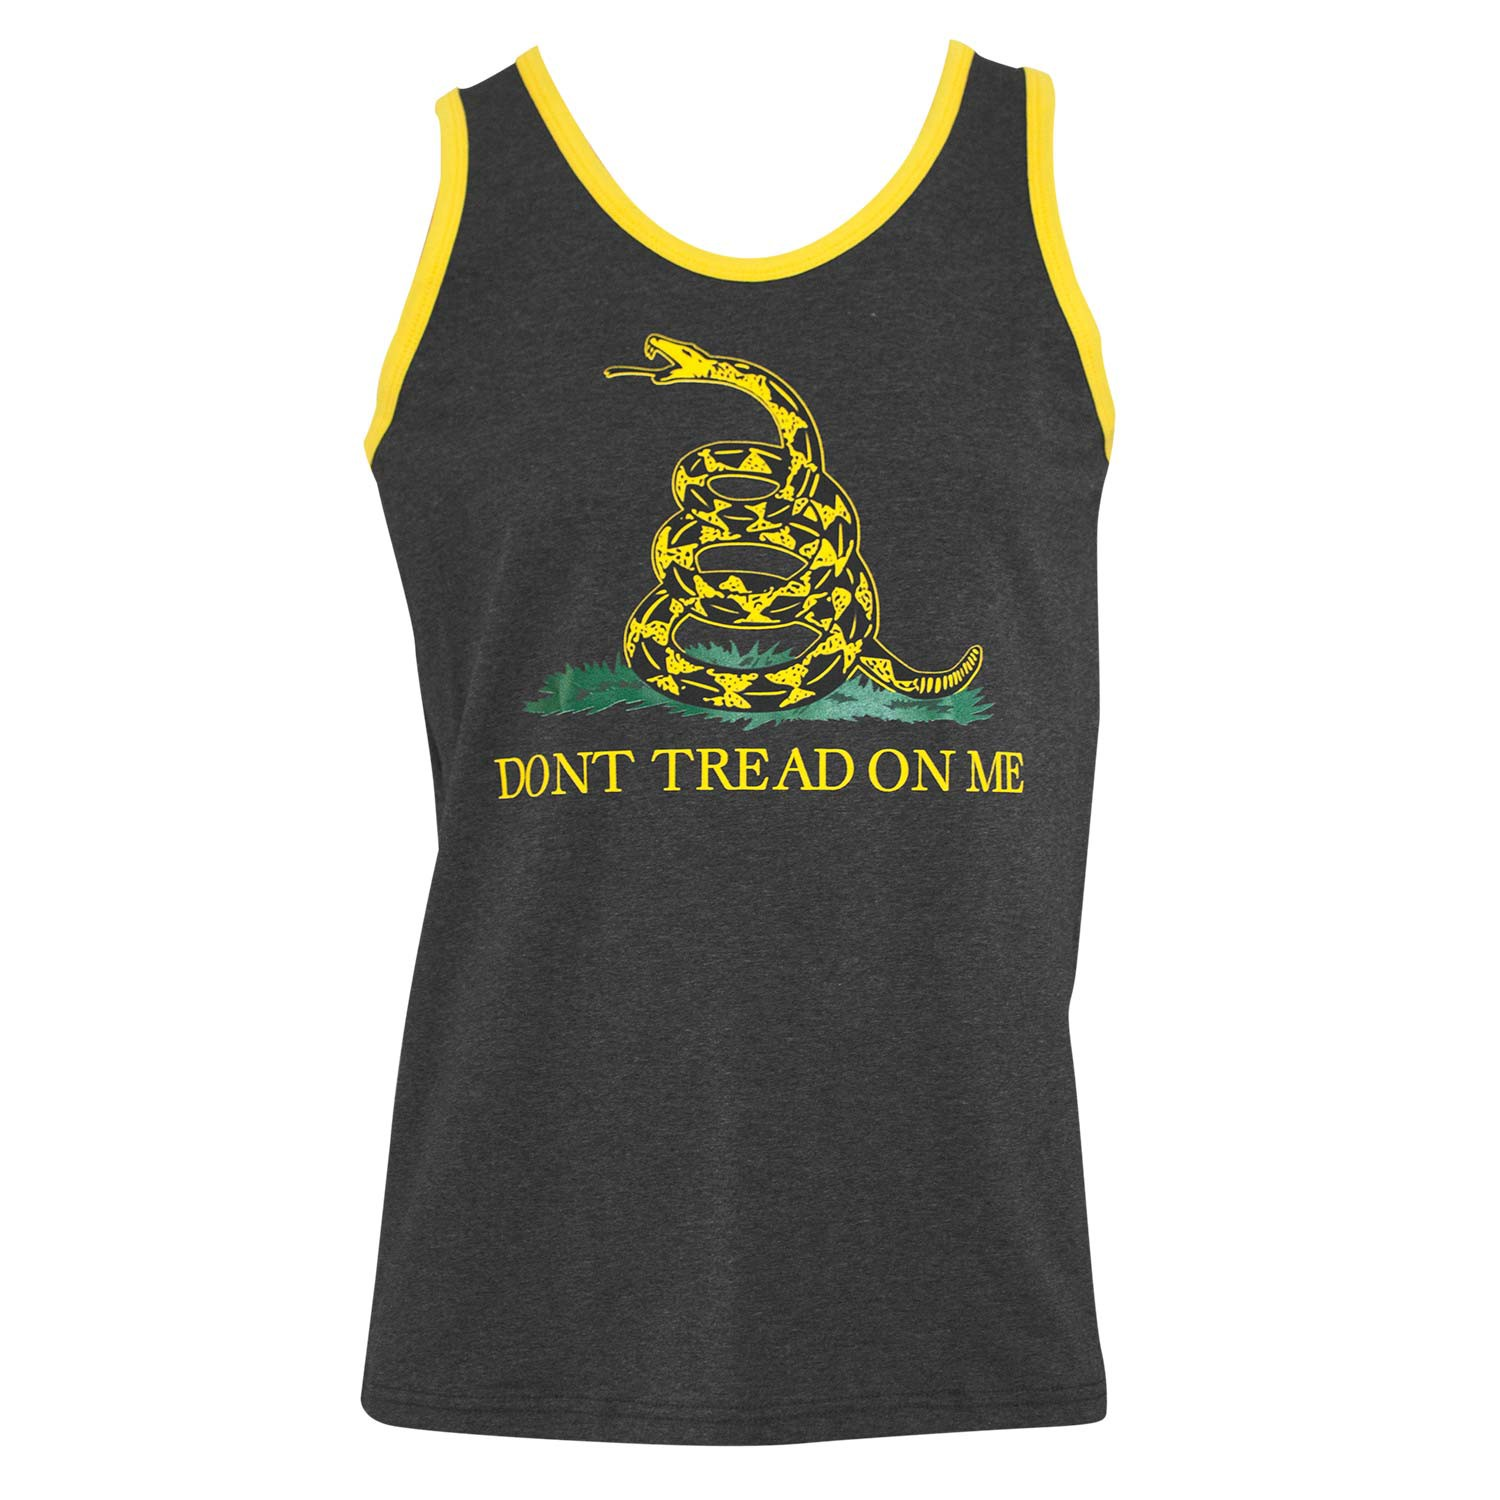 Don't Tread On Me Grey Tank Top